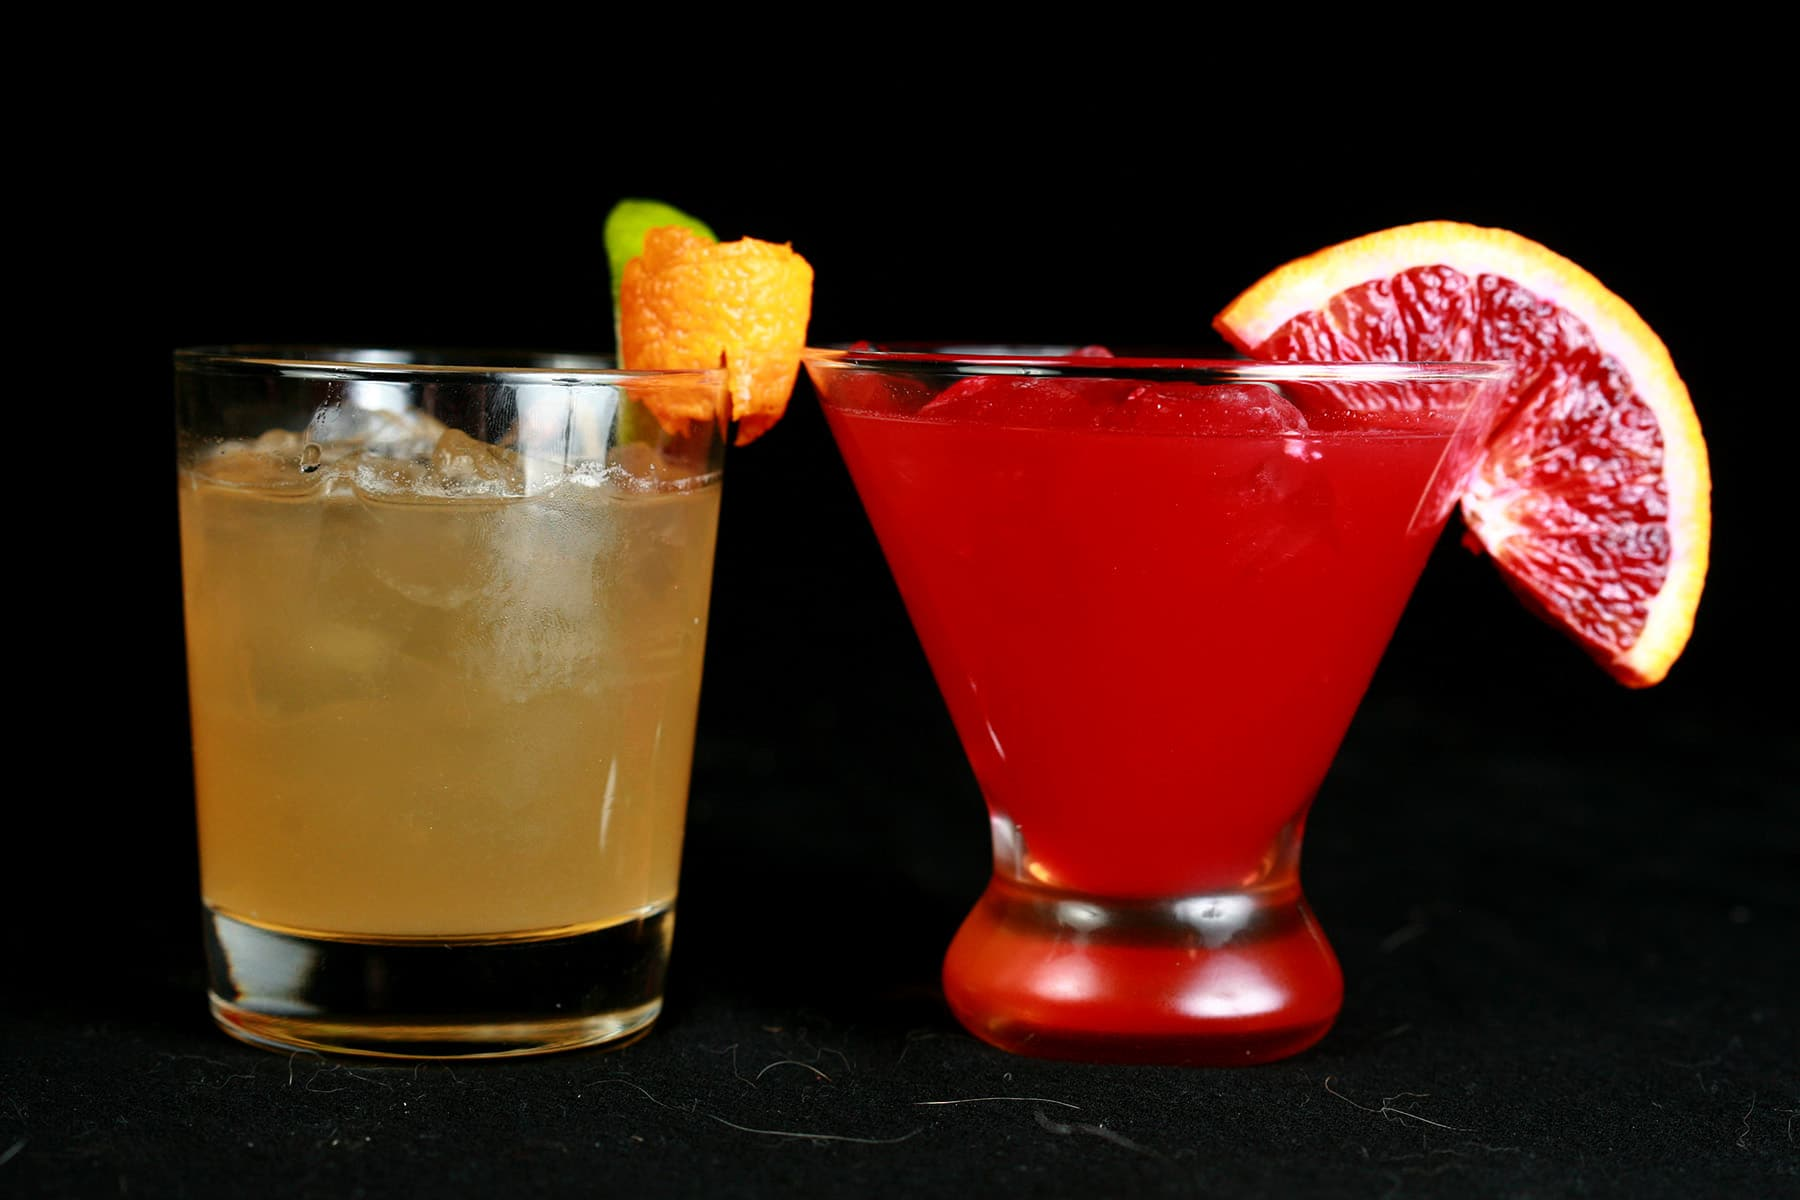 Two glasses of sours cocktails, one made with a traditional lime recipe, and the other with blood orange.